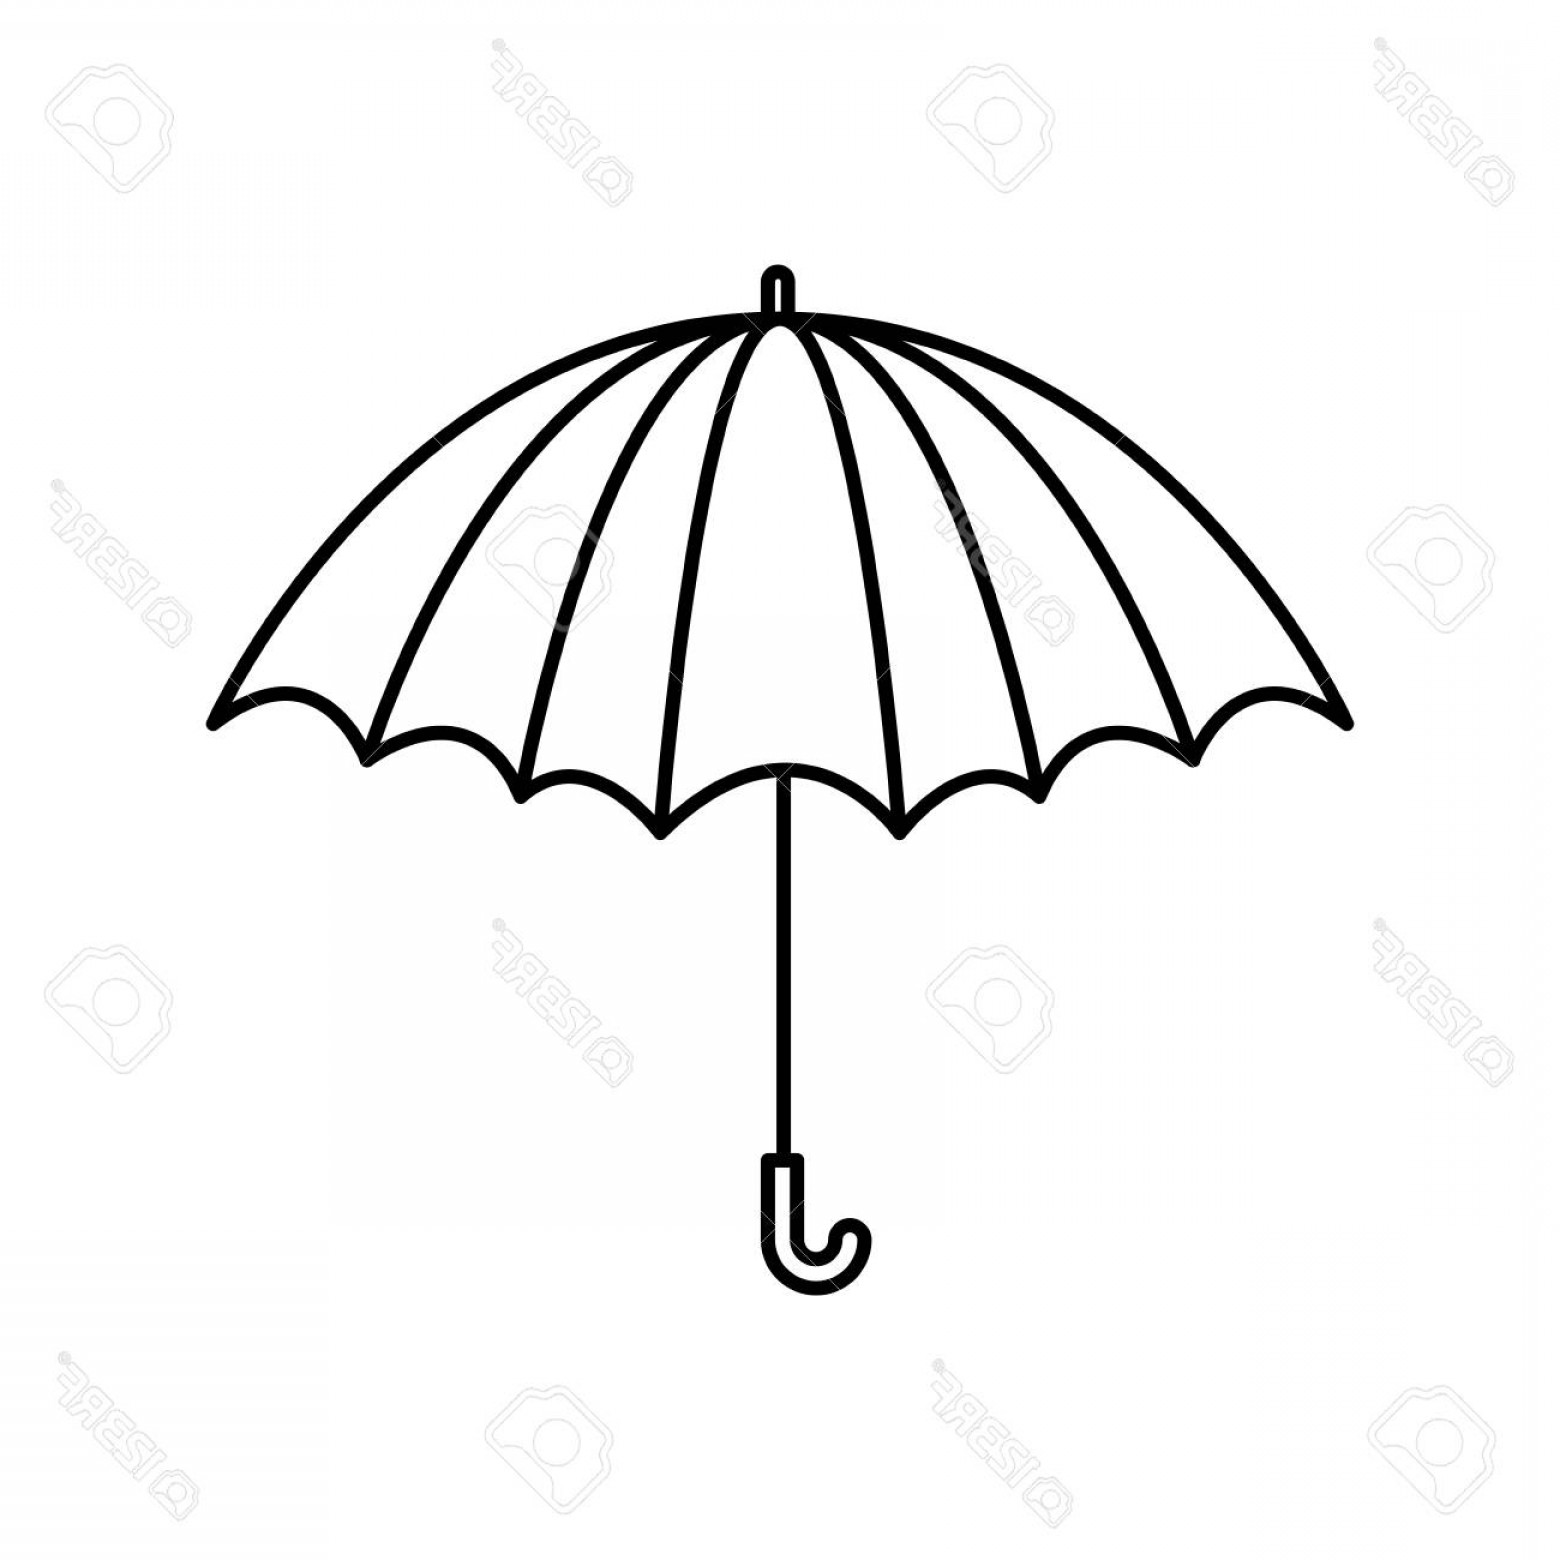 Umbrella Vector Black: Photostock Vector Black Silhouette With Opened Umbrella Vector Illustration